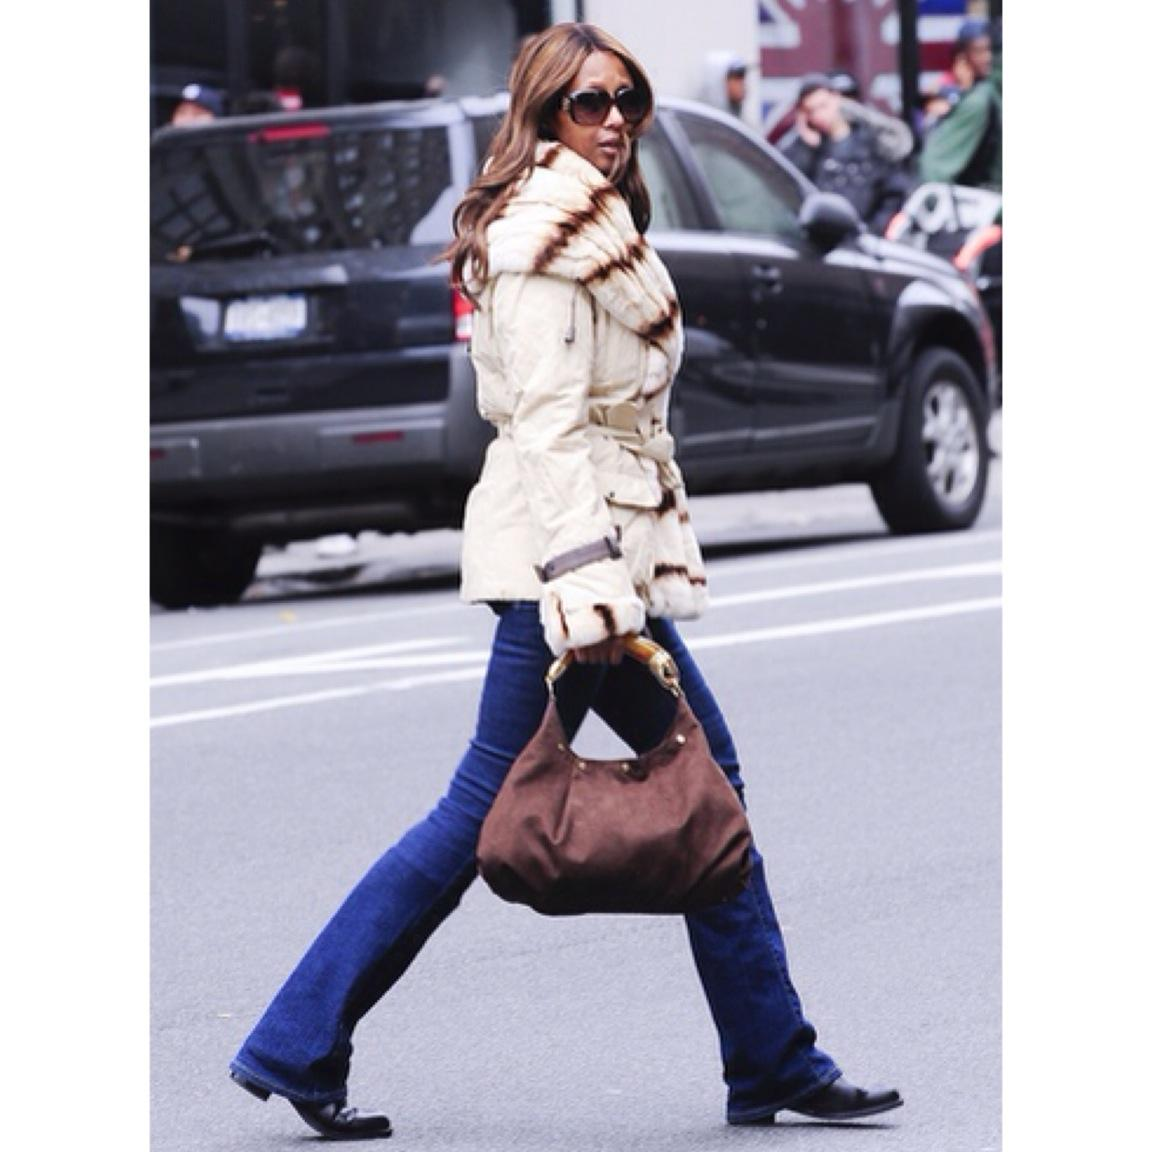 Bundle up in Everyday Elegance! Check for inspo http://t.co/mQo0x4xq1n #EverydayElegance #ImanAgelessChic http://t.co/ca9O4Kdqgr